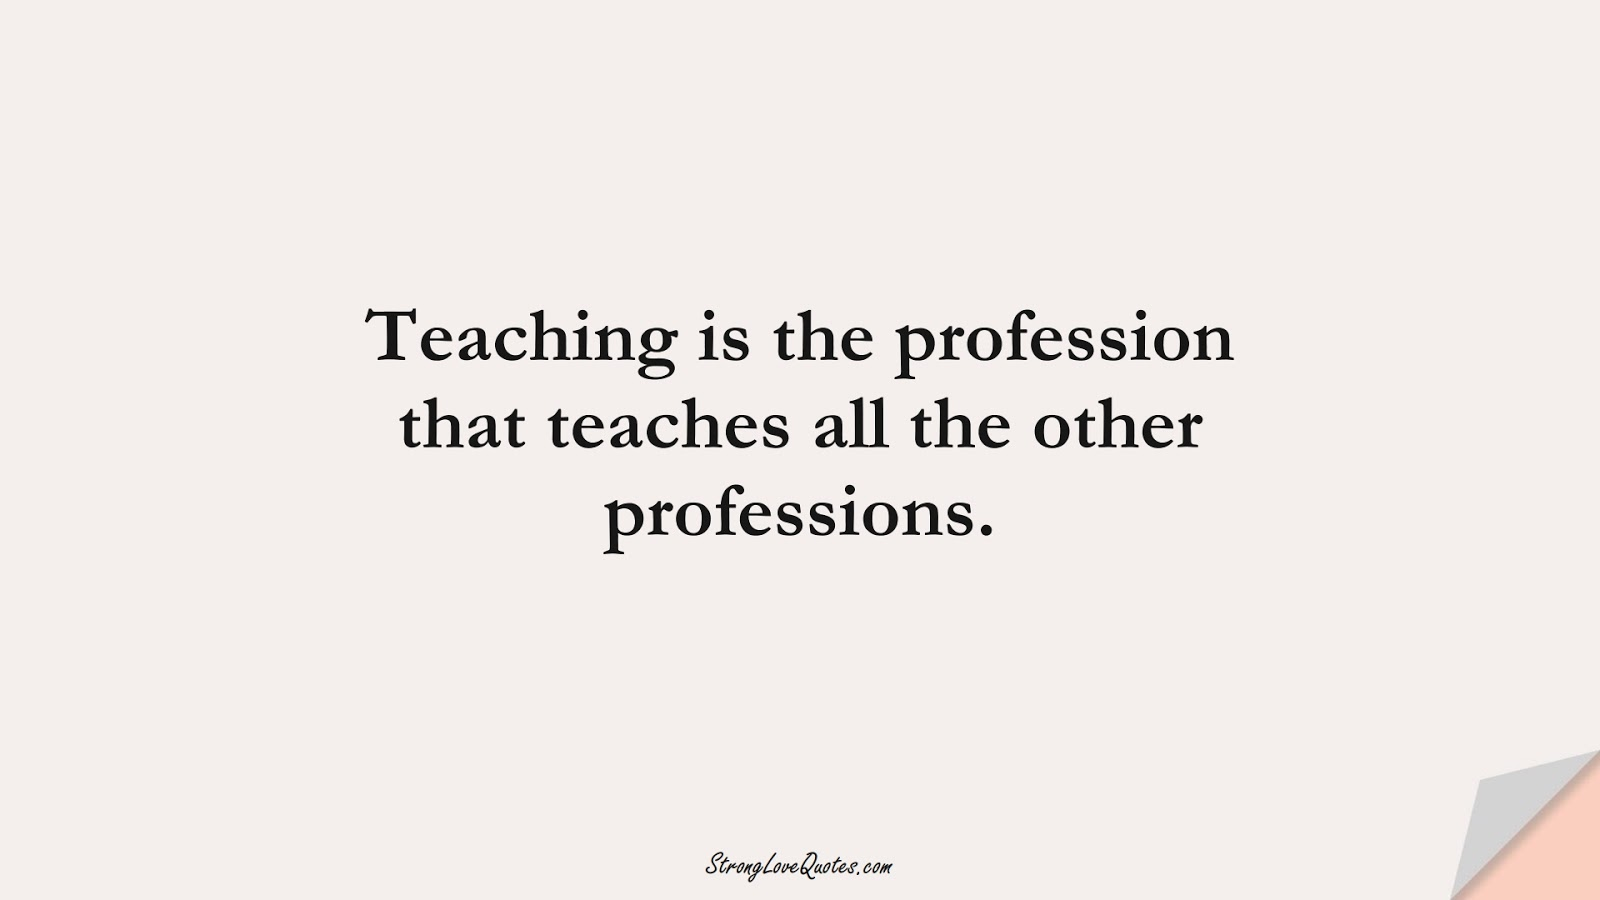 Teaching is the profession that teaches all the other professions.FALSE